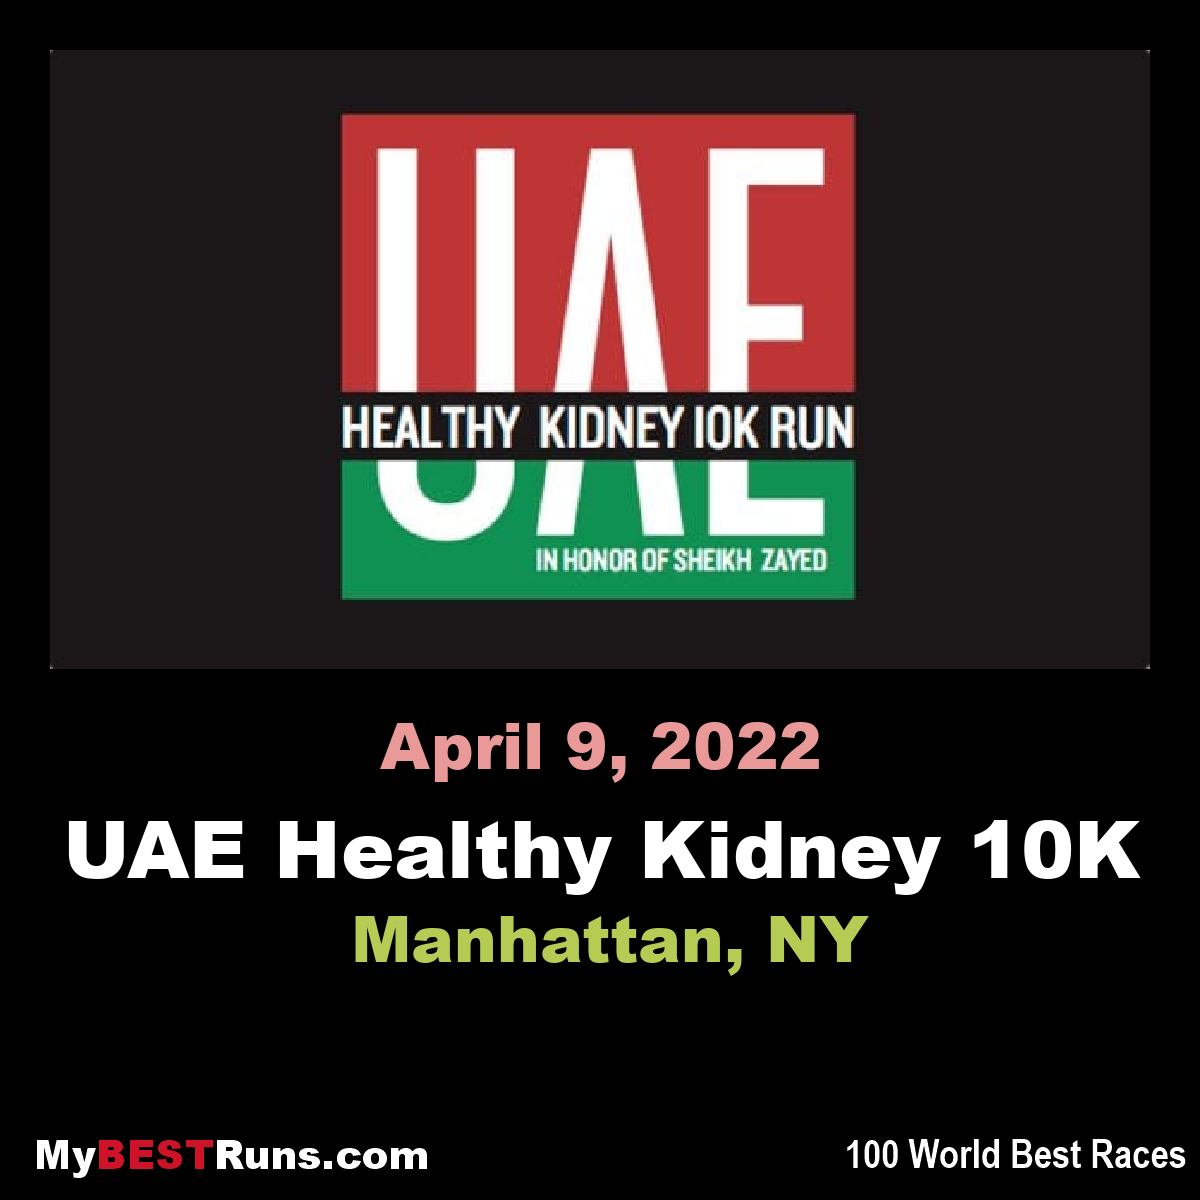 UAE Healthy Kidney 10K